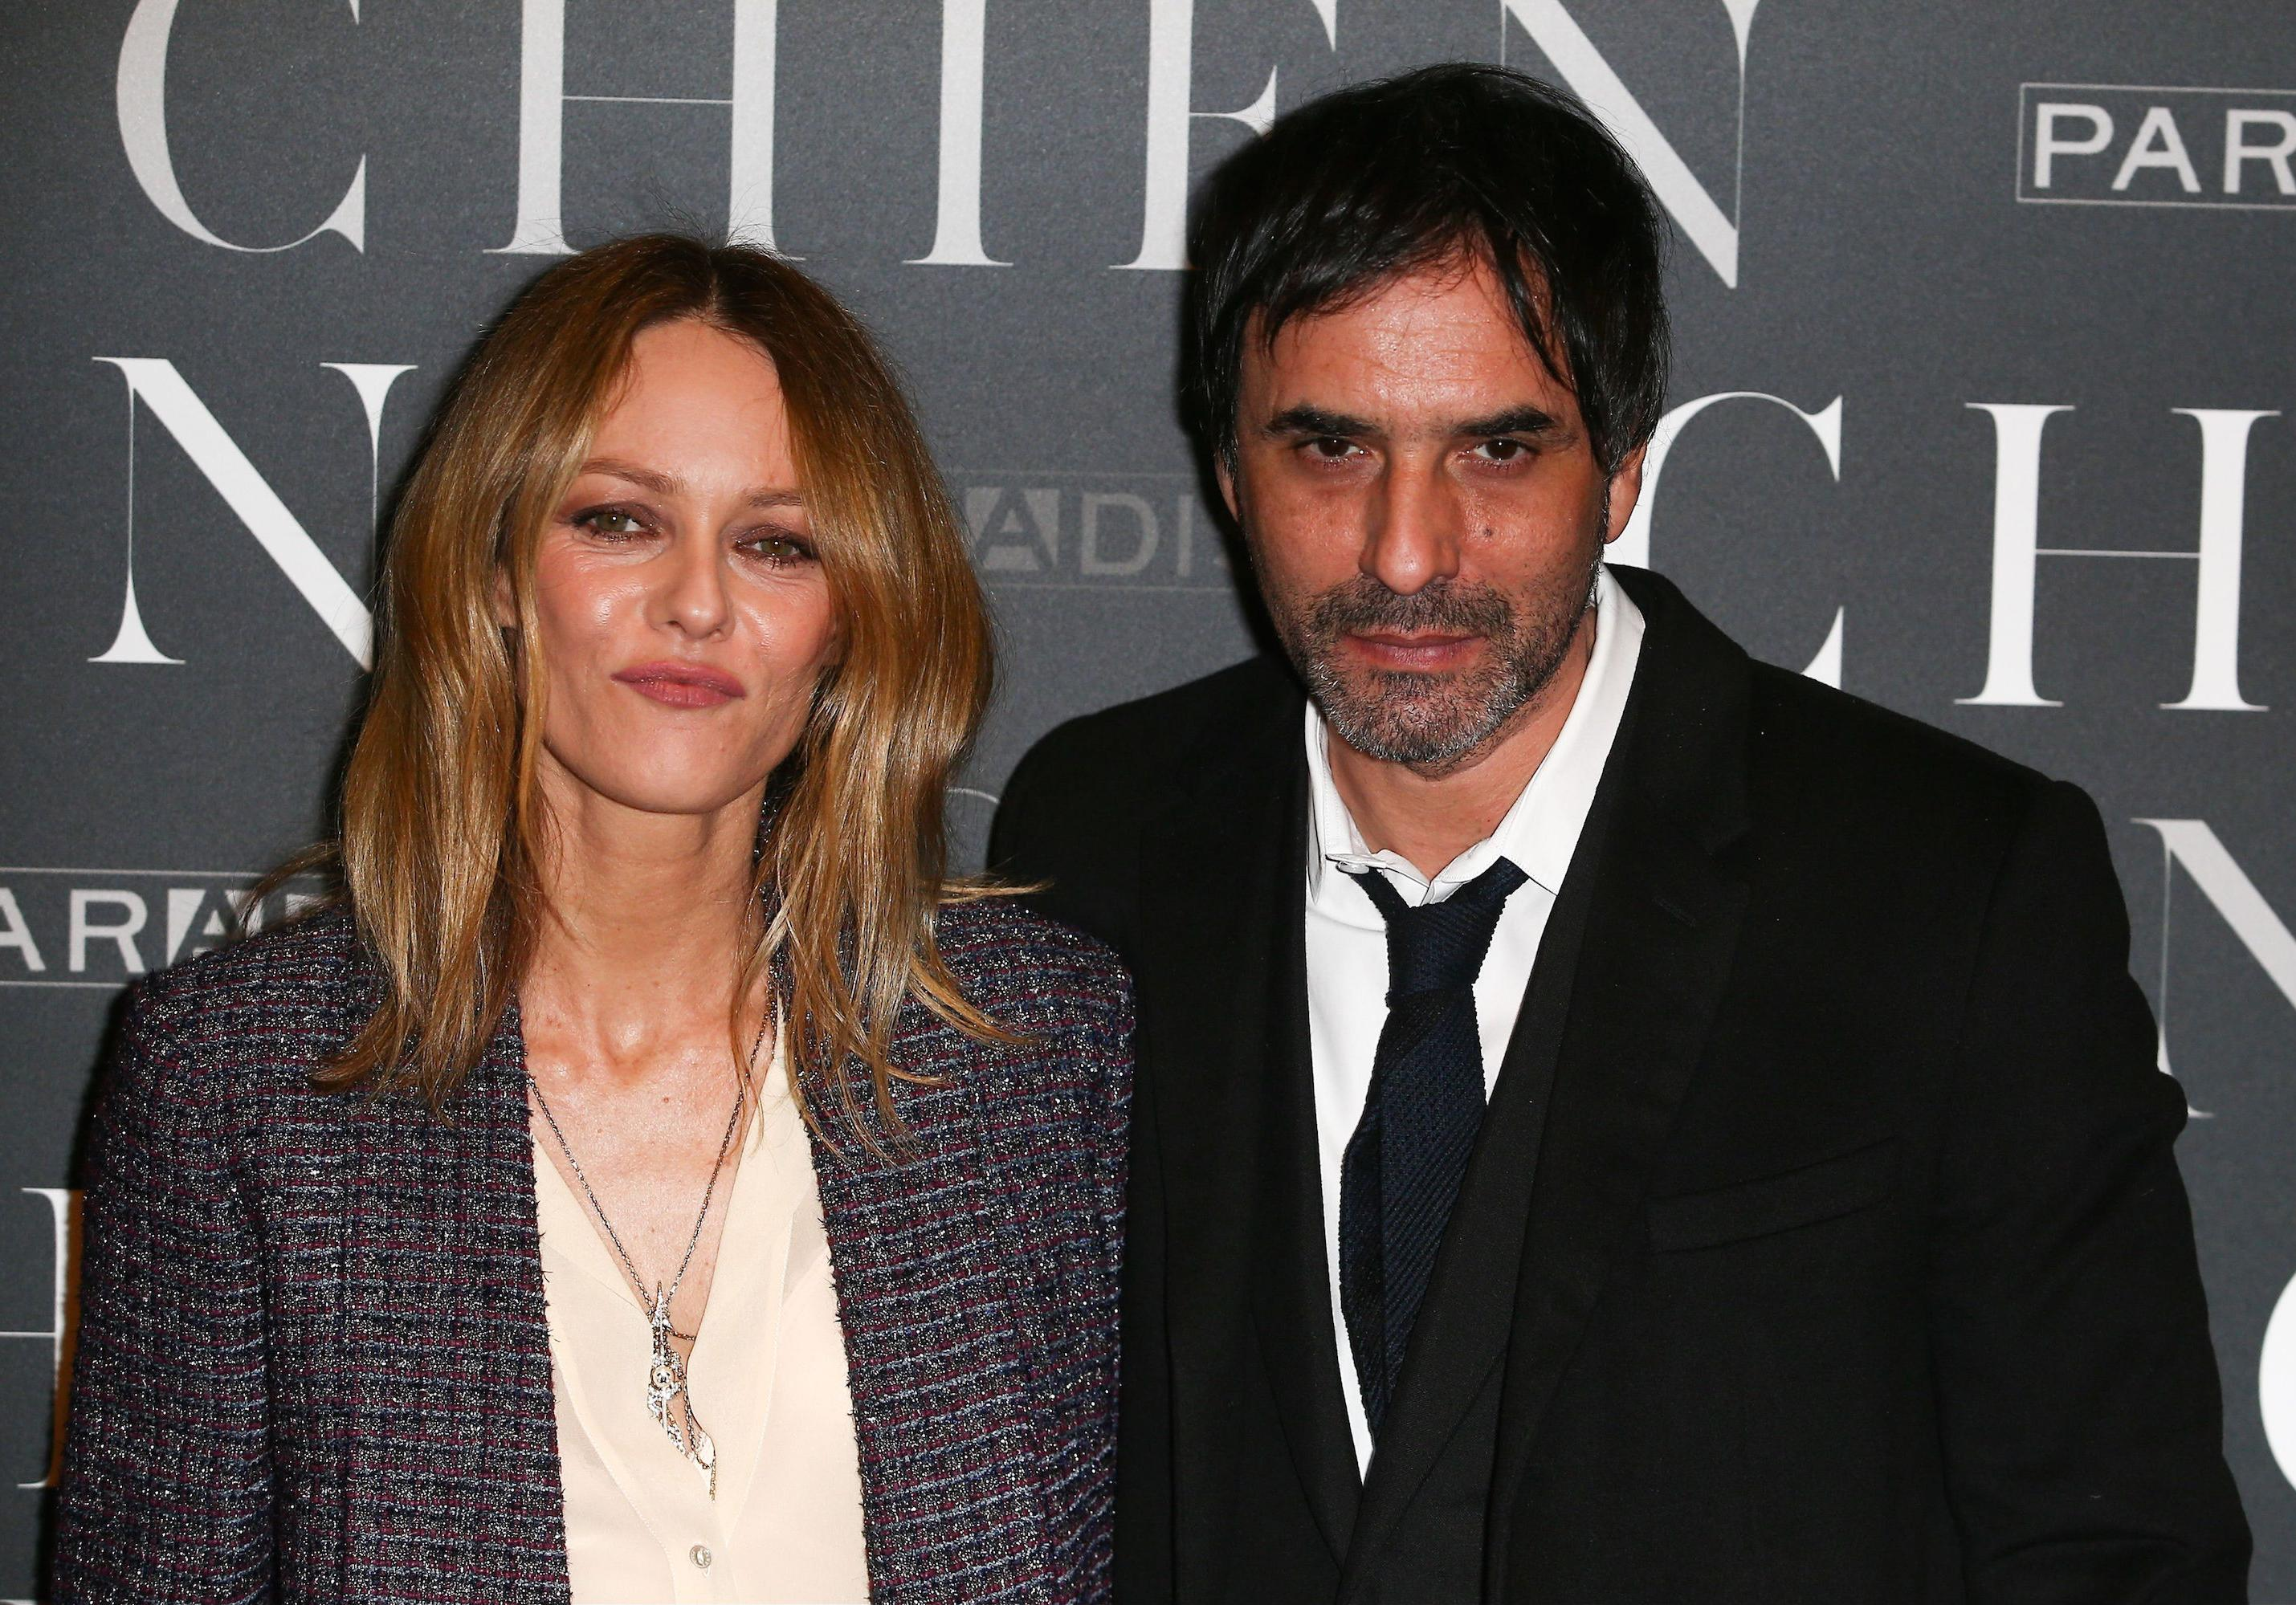 vanessa paradis folle amoureuse de samuel benchetrit sa belle d claration d 39 amour. Black Bedroom Furniture Sets. Home Design Ideas